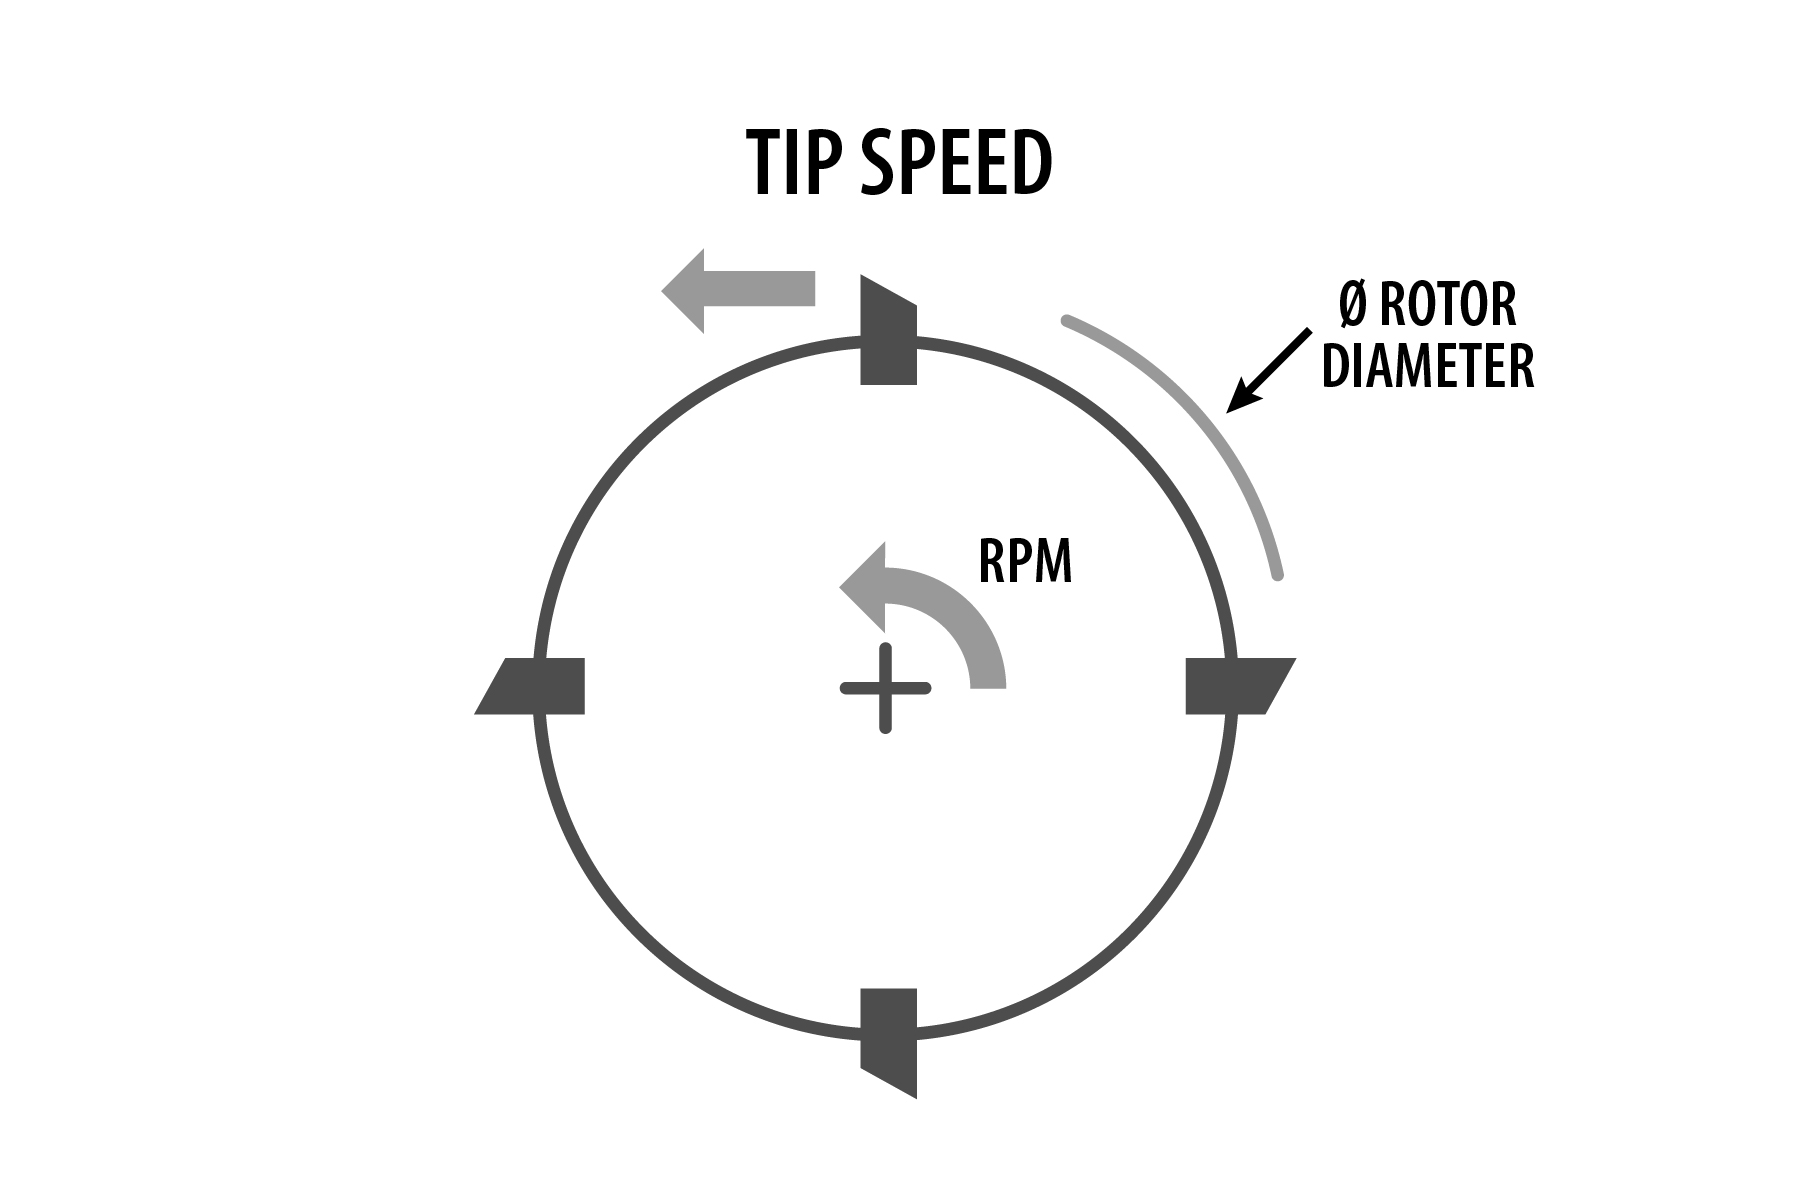 How To Calculate Rpm From Speed